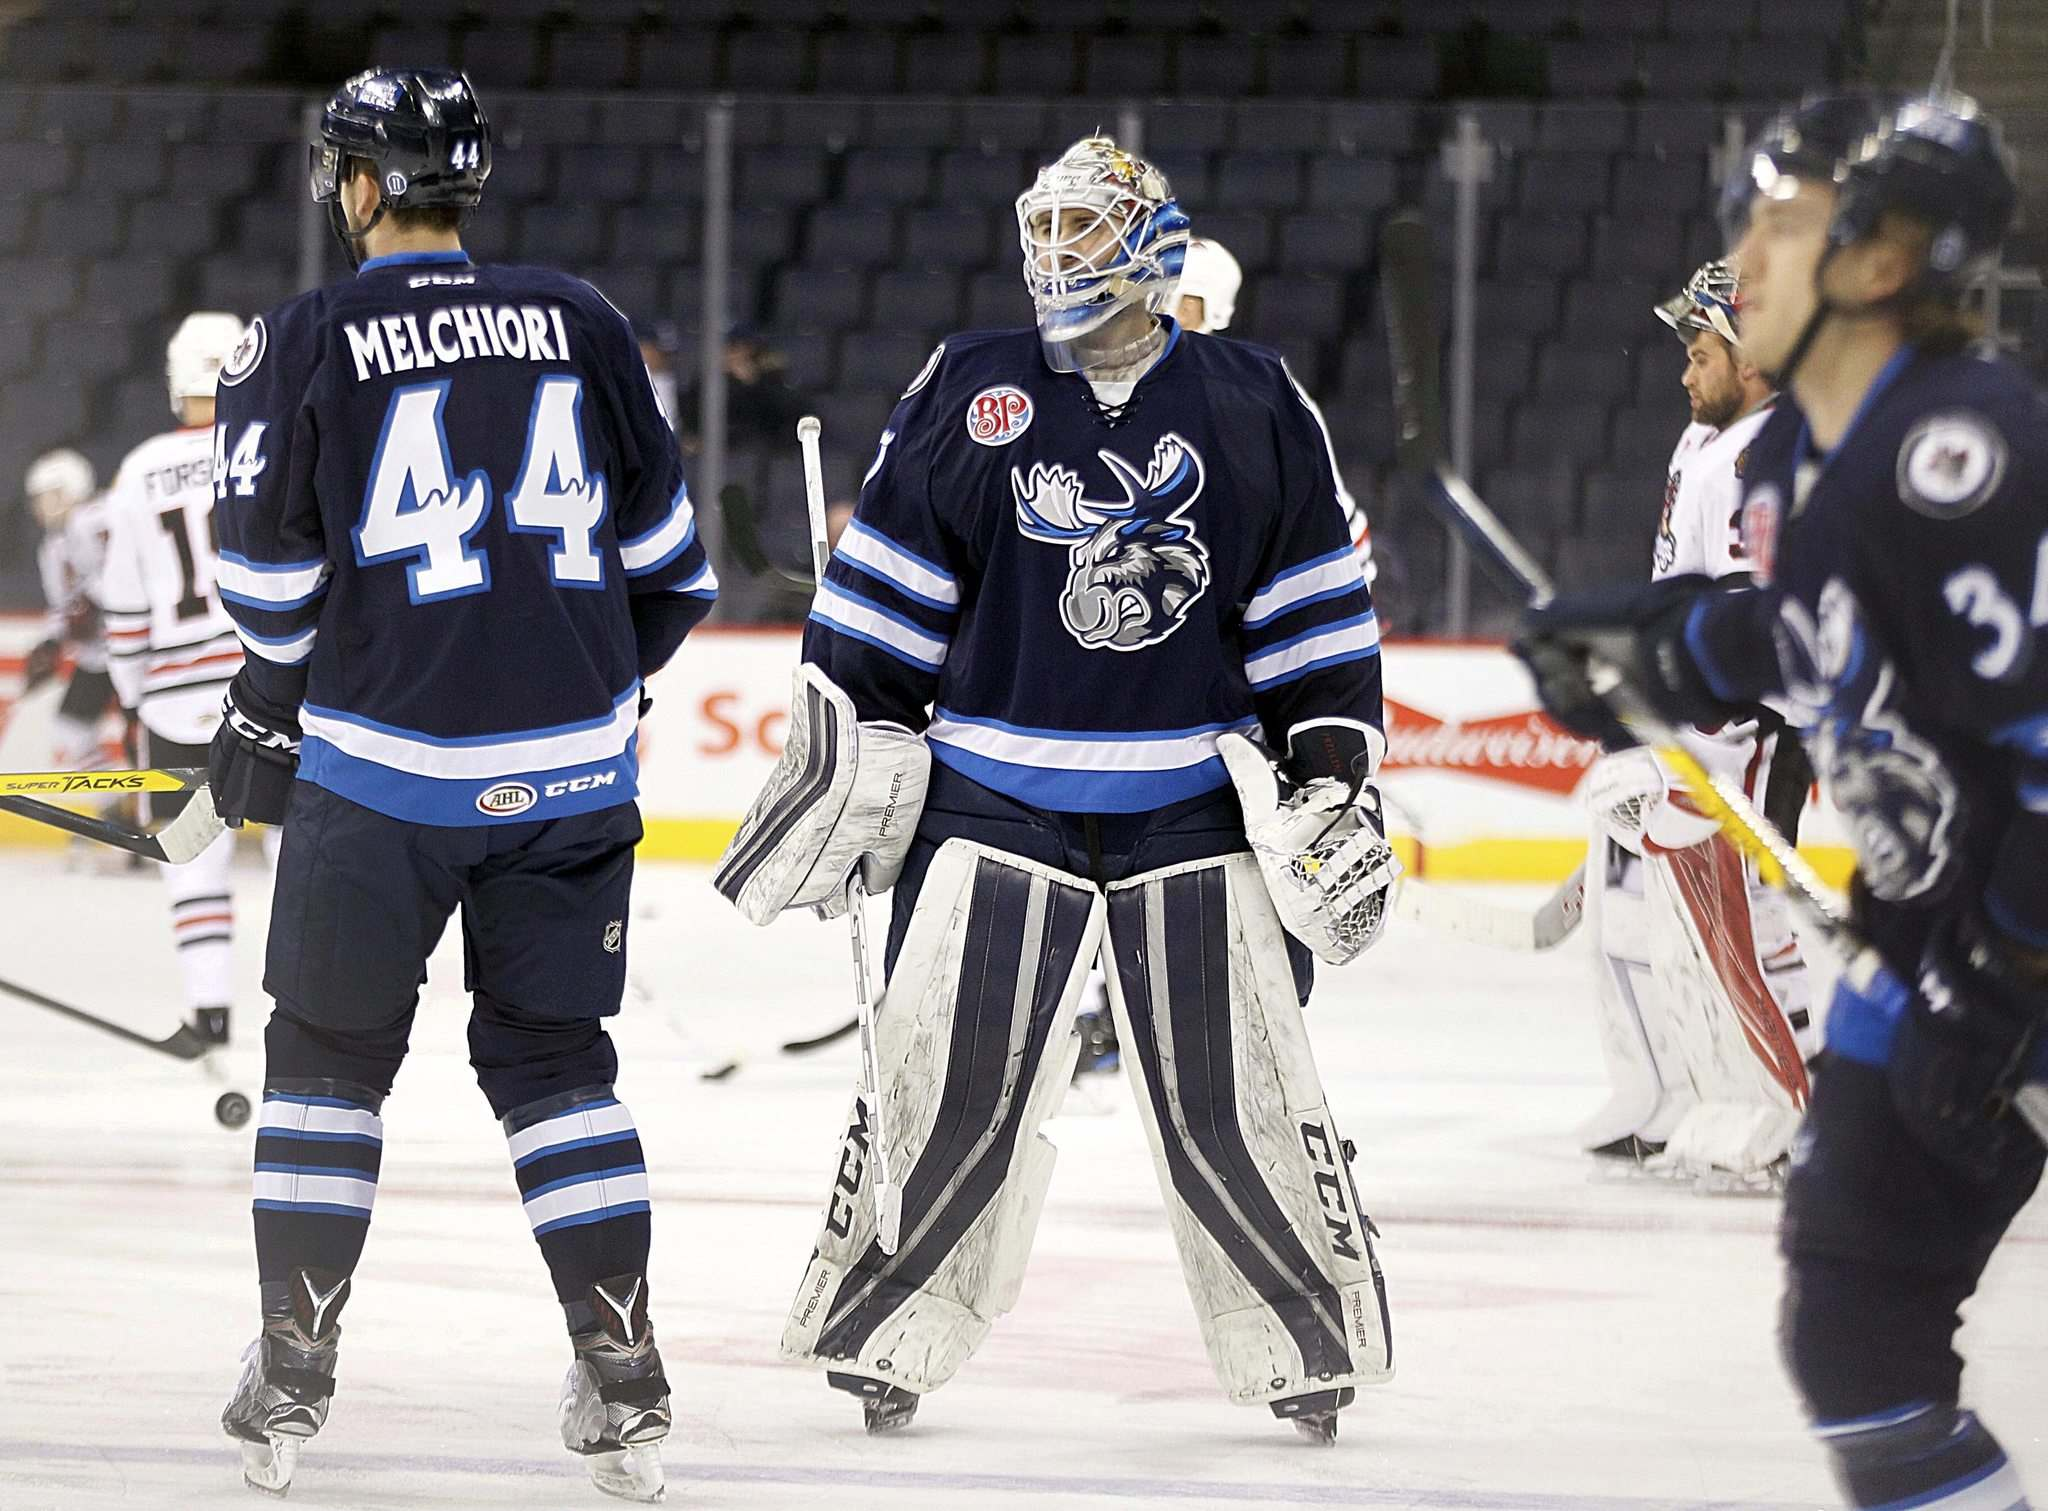 PHIL HOSSACK / WINNIPEG FREE PRESS</p><p>Manitoba Moose netminder Jamie Phillips hasn't seen much game action since being called up from the ECHL, appearing in just two games, but has put in extra time during practice to help his teammates.</p>